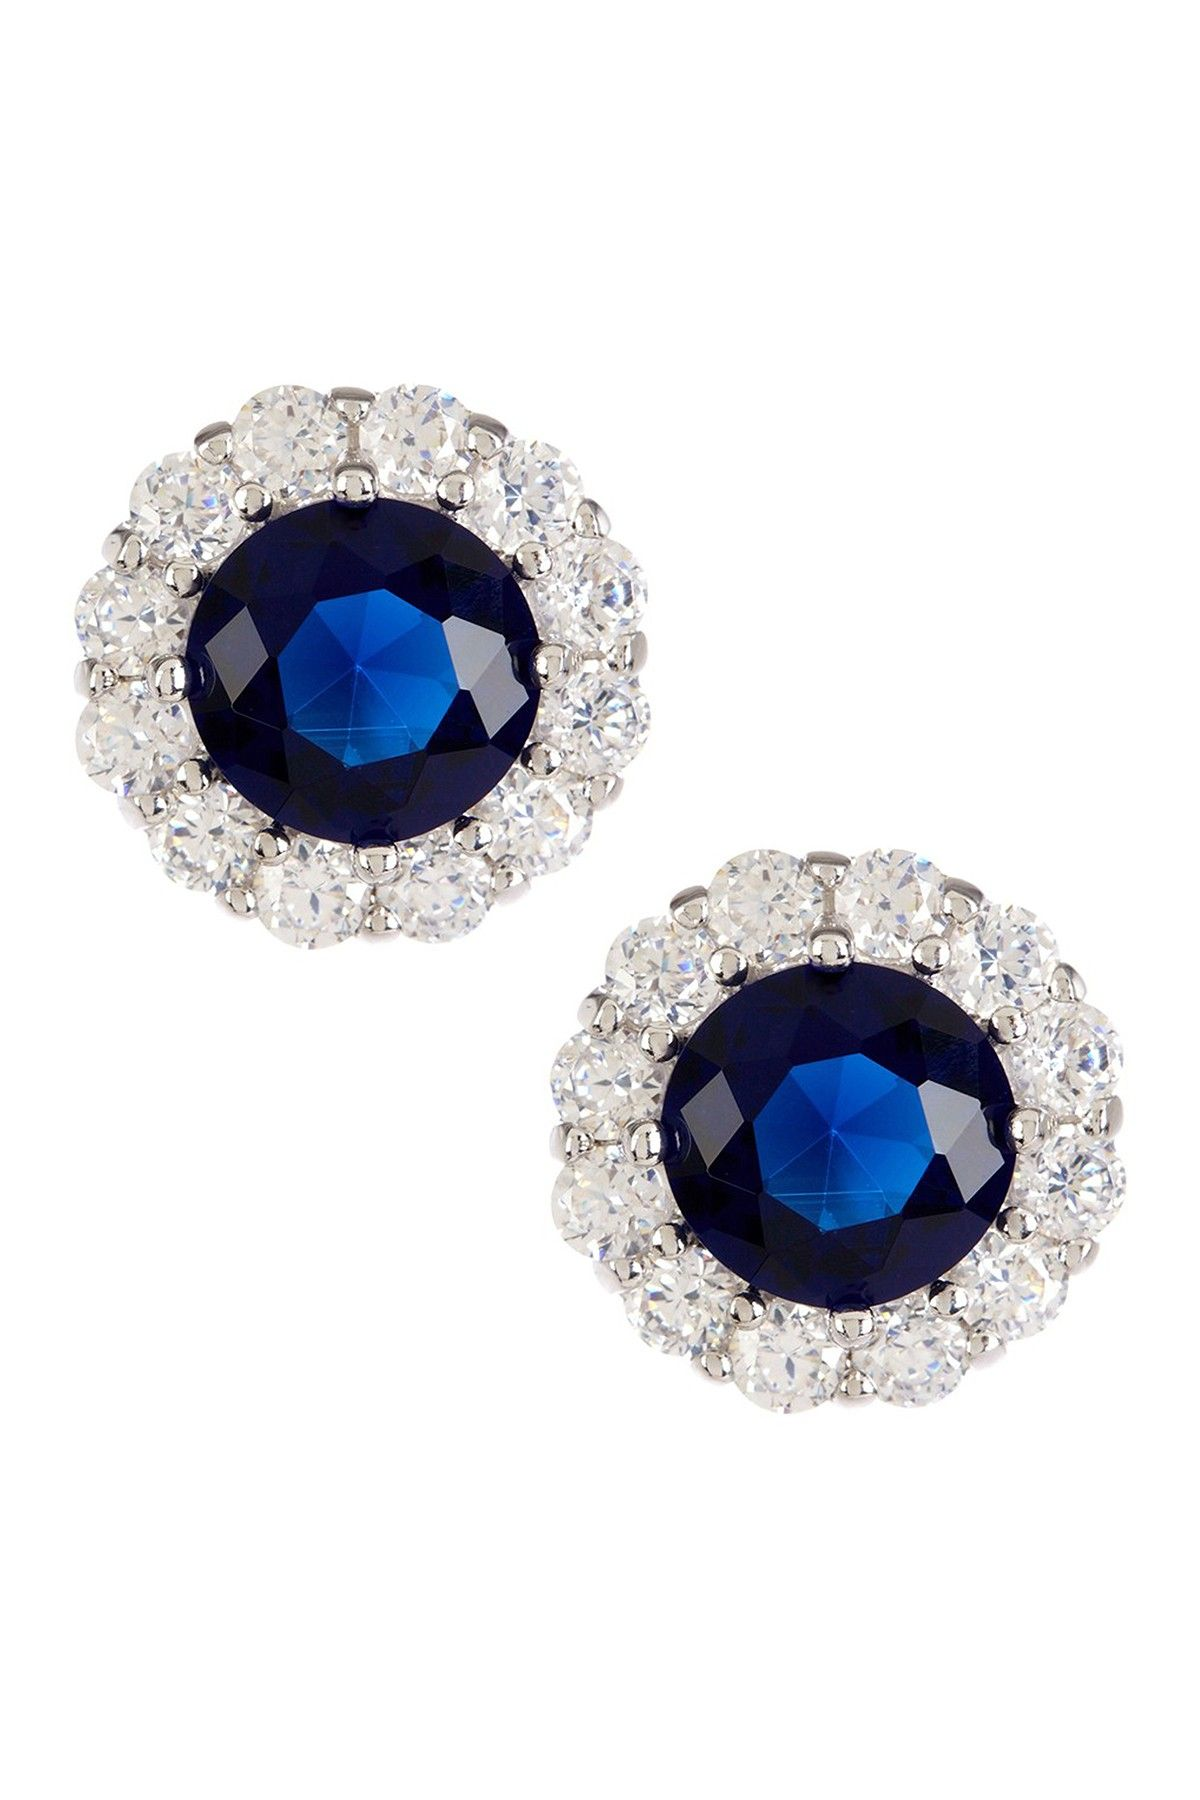 Lovely Natural Blue Sapphire Gemstone 925 Sterling Silver Pave Diamond Earring